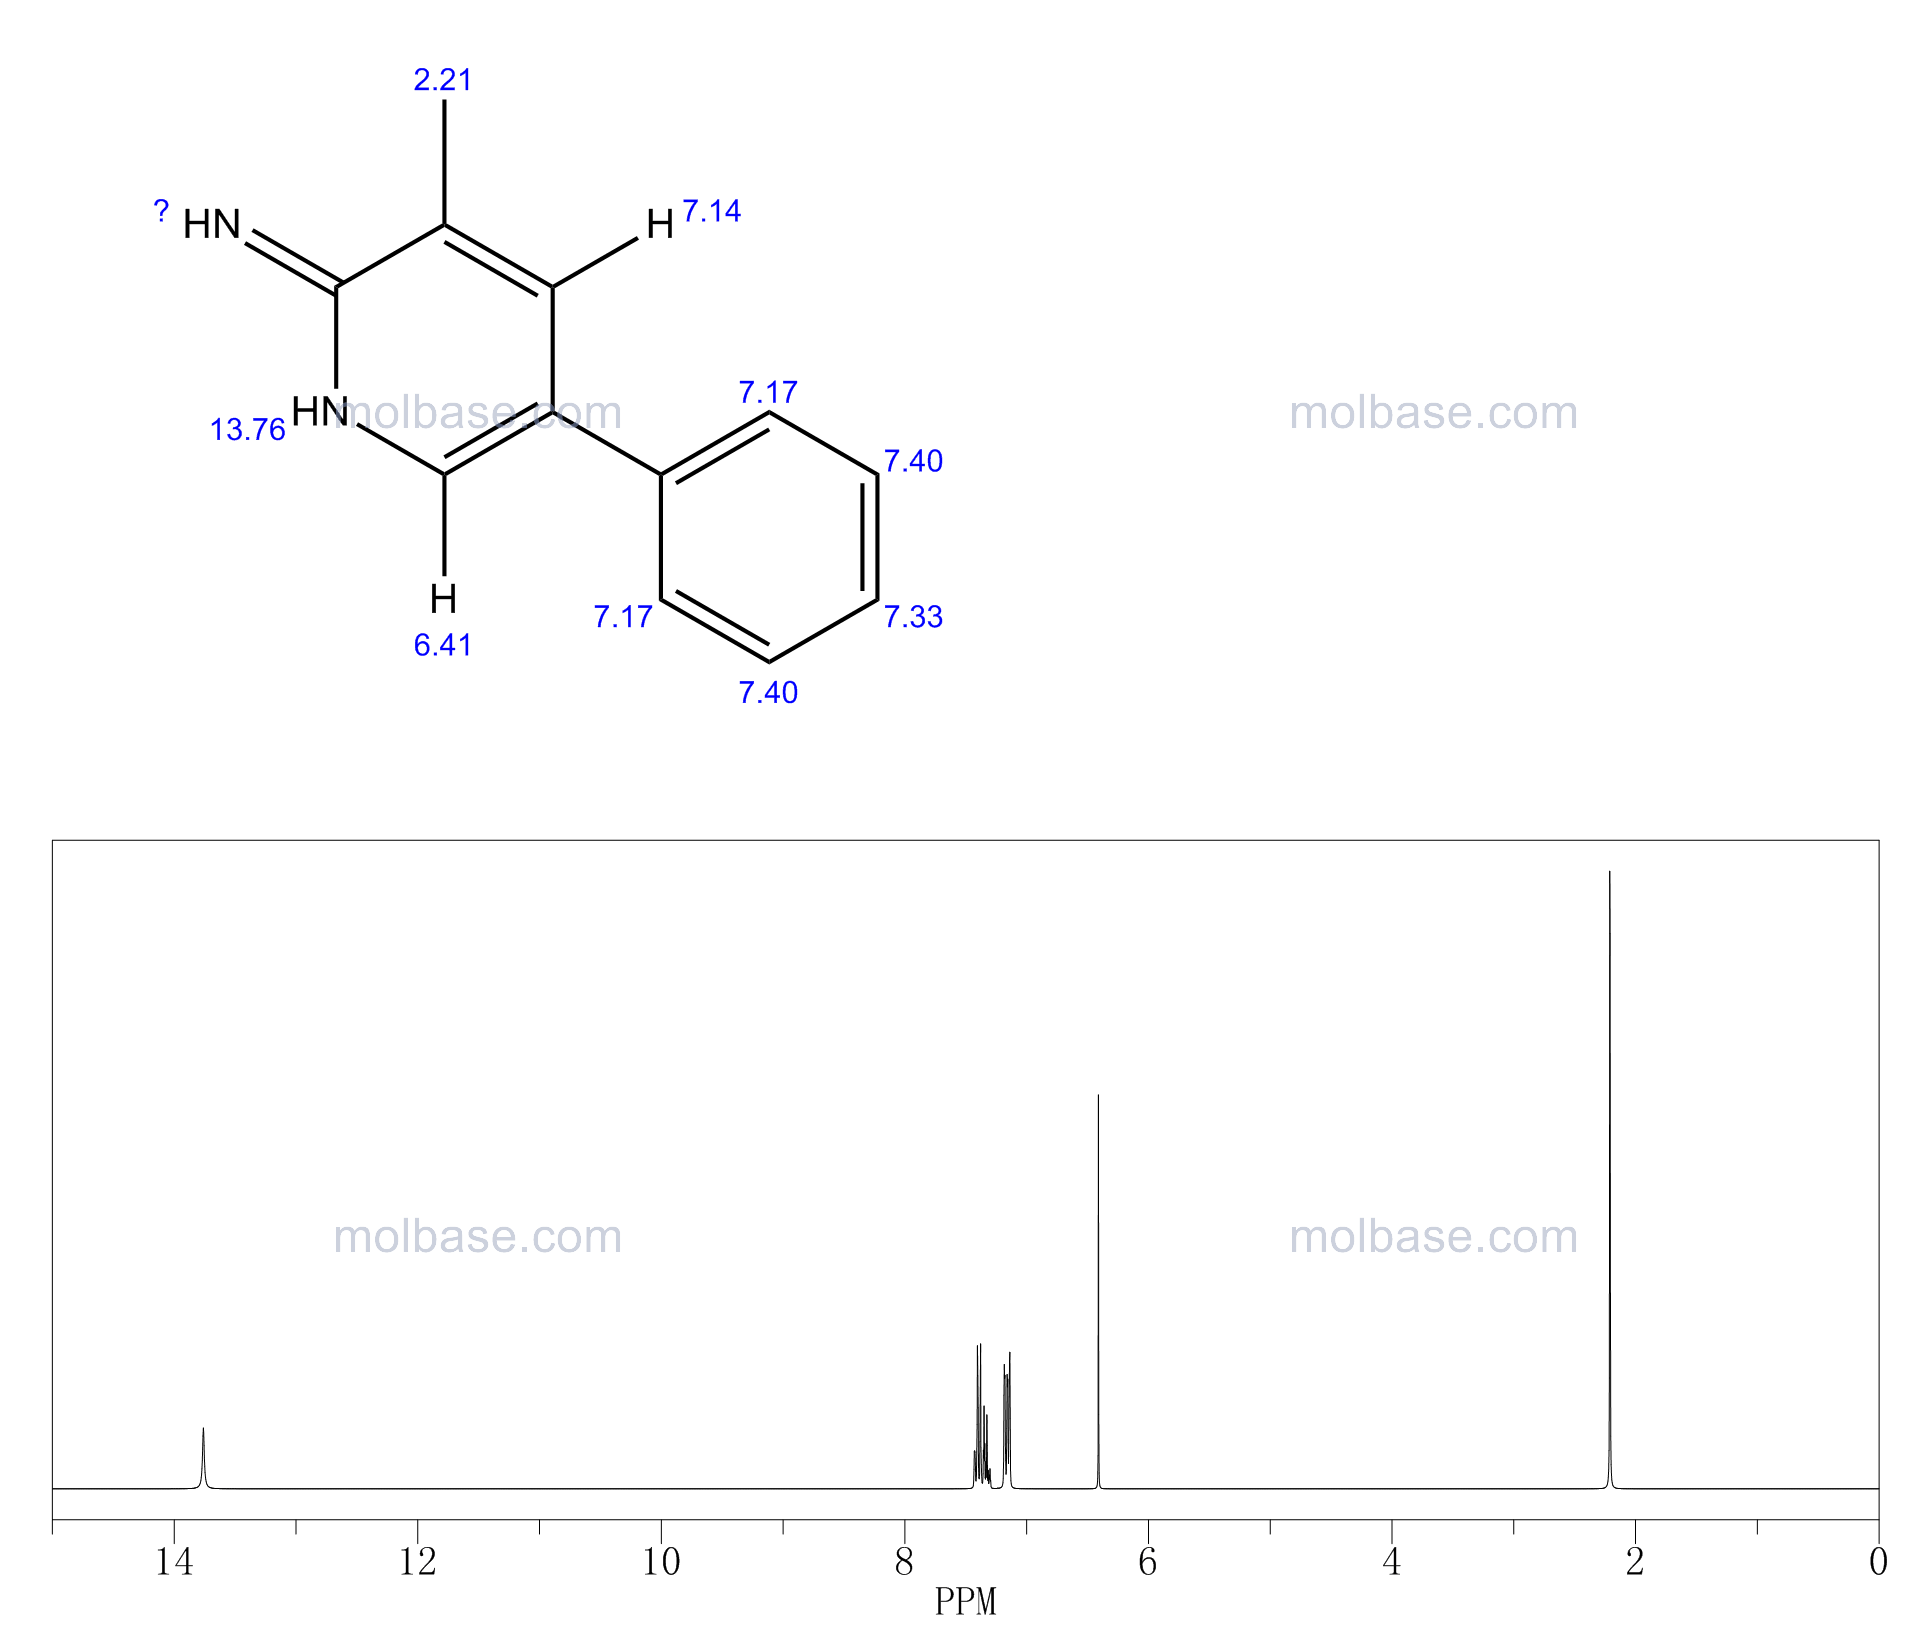 3-methyl-5-phenylpyridin-2-amine NMR spectra analysis, Chemical CAS NO. 114042-03-4 NMR spectral analysis, 3-methyl-5-phenylpyridin-2-amine C-NMR spectrum